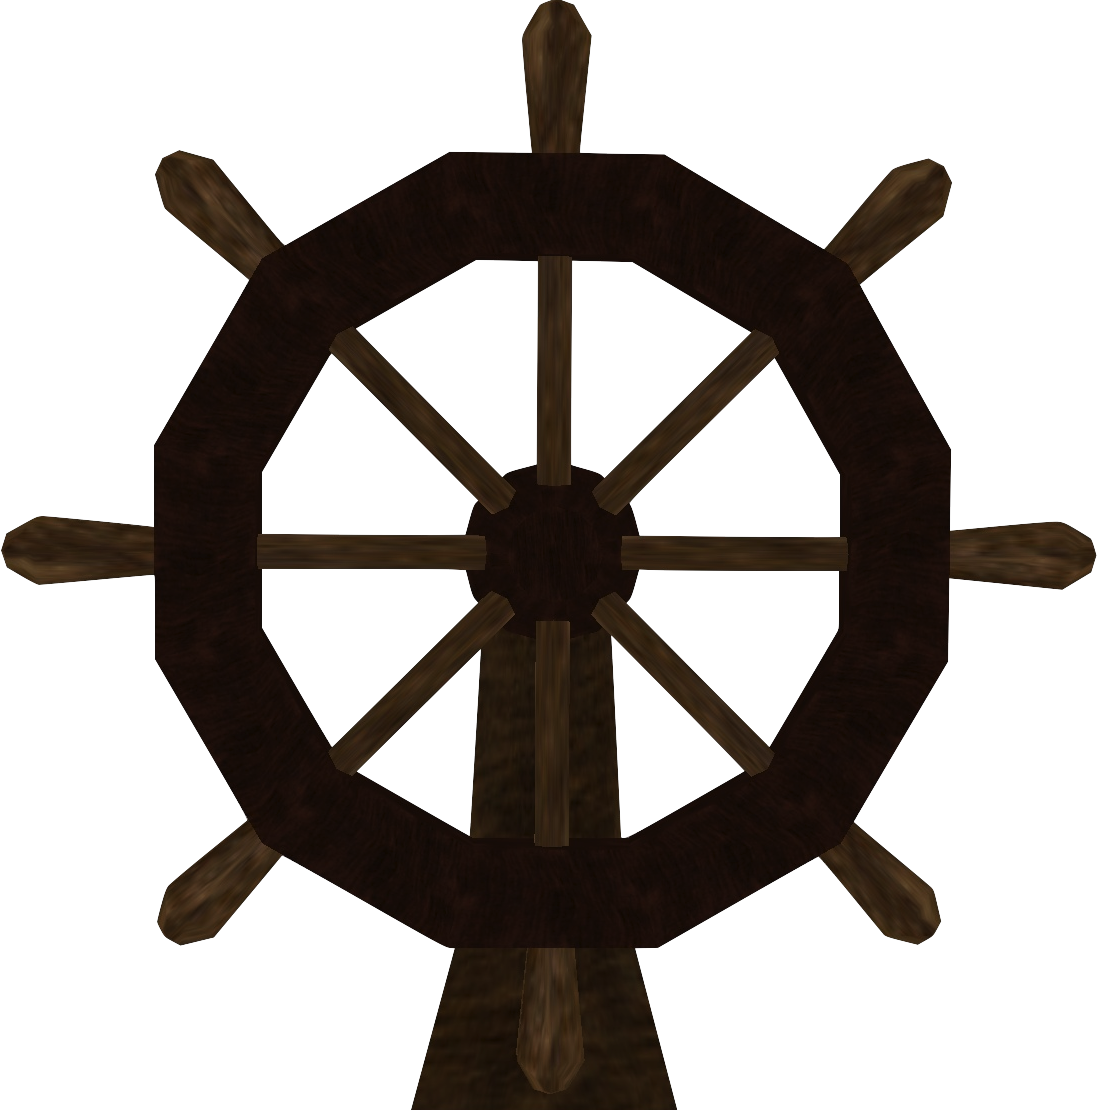 Wheel clipart sailboat. Sailing pirates online wiki